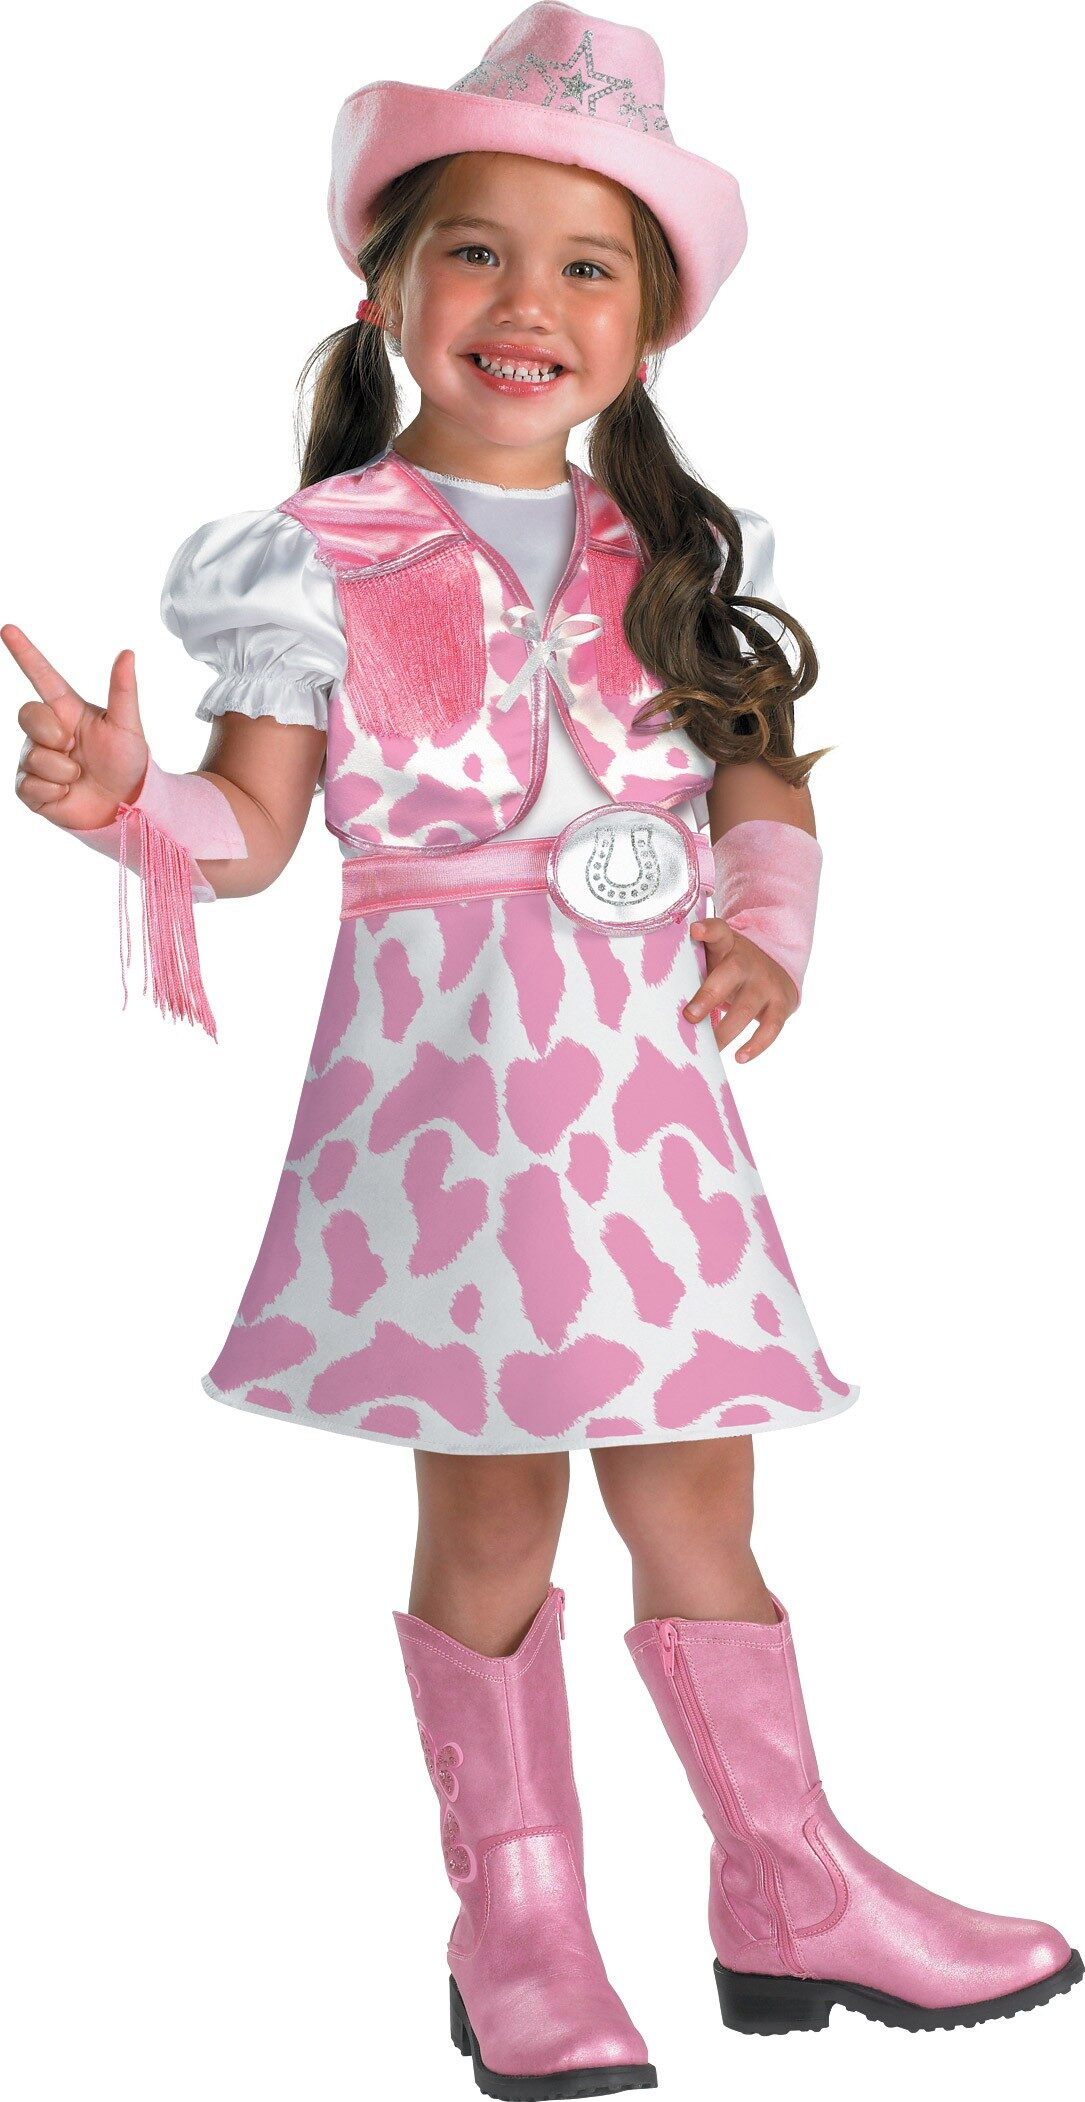 Kids Wild West Cutie Toddler Cowgirl Costume Costumes